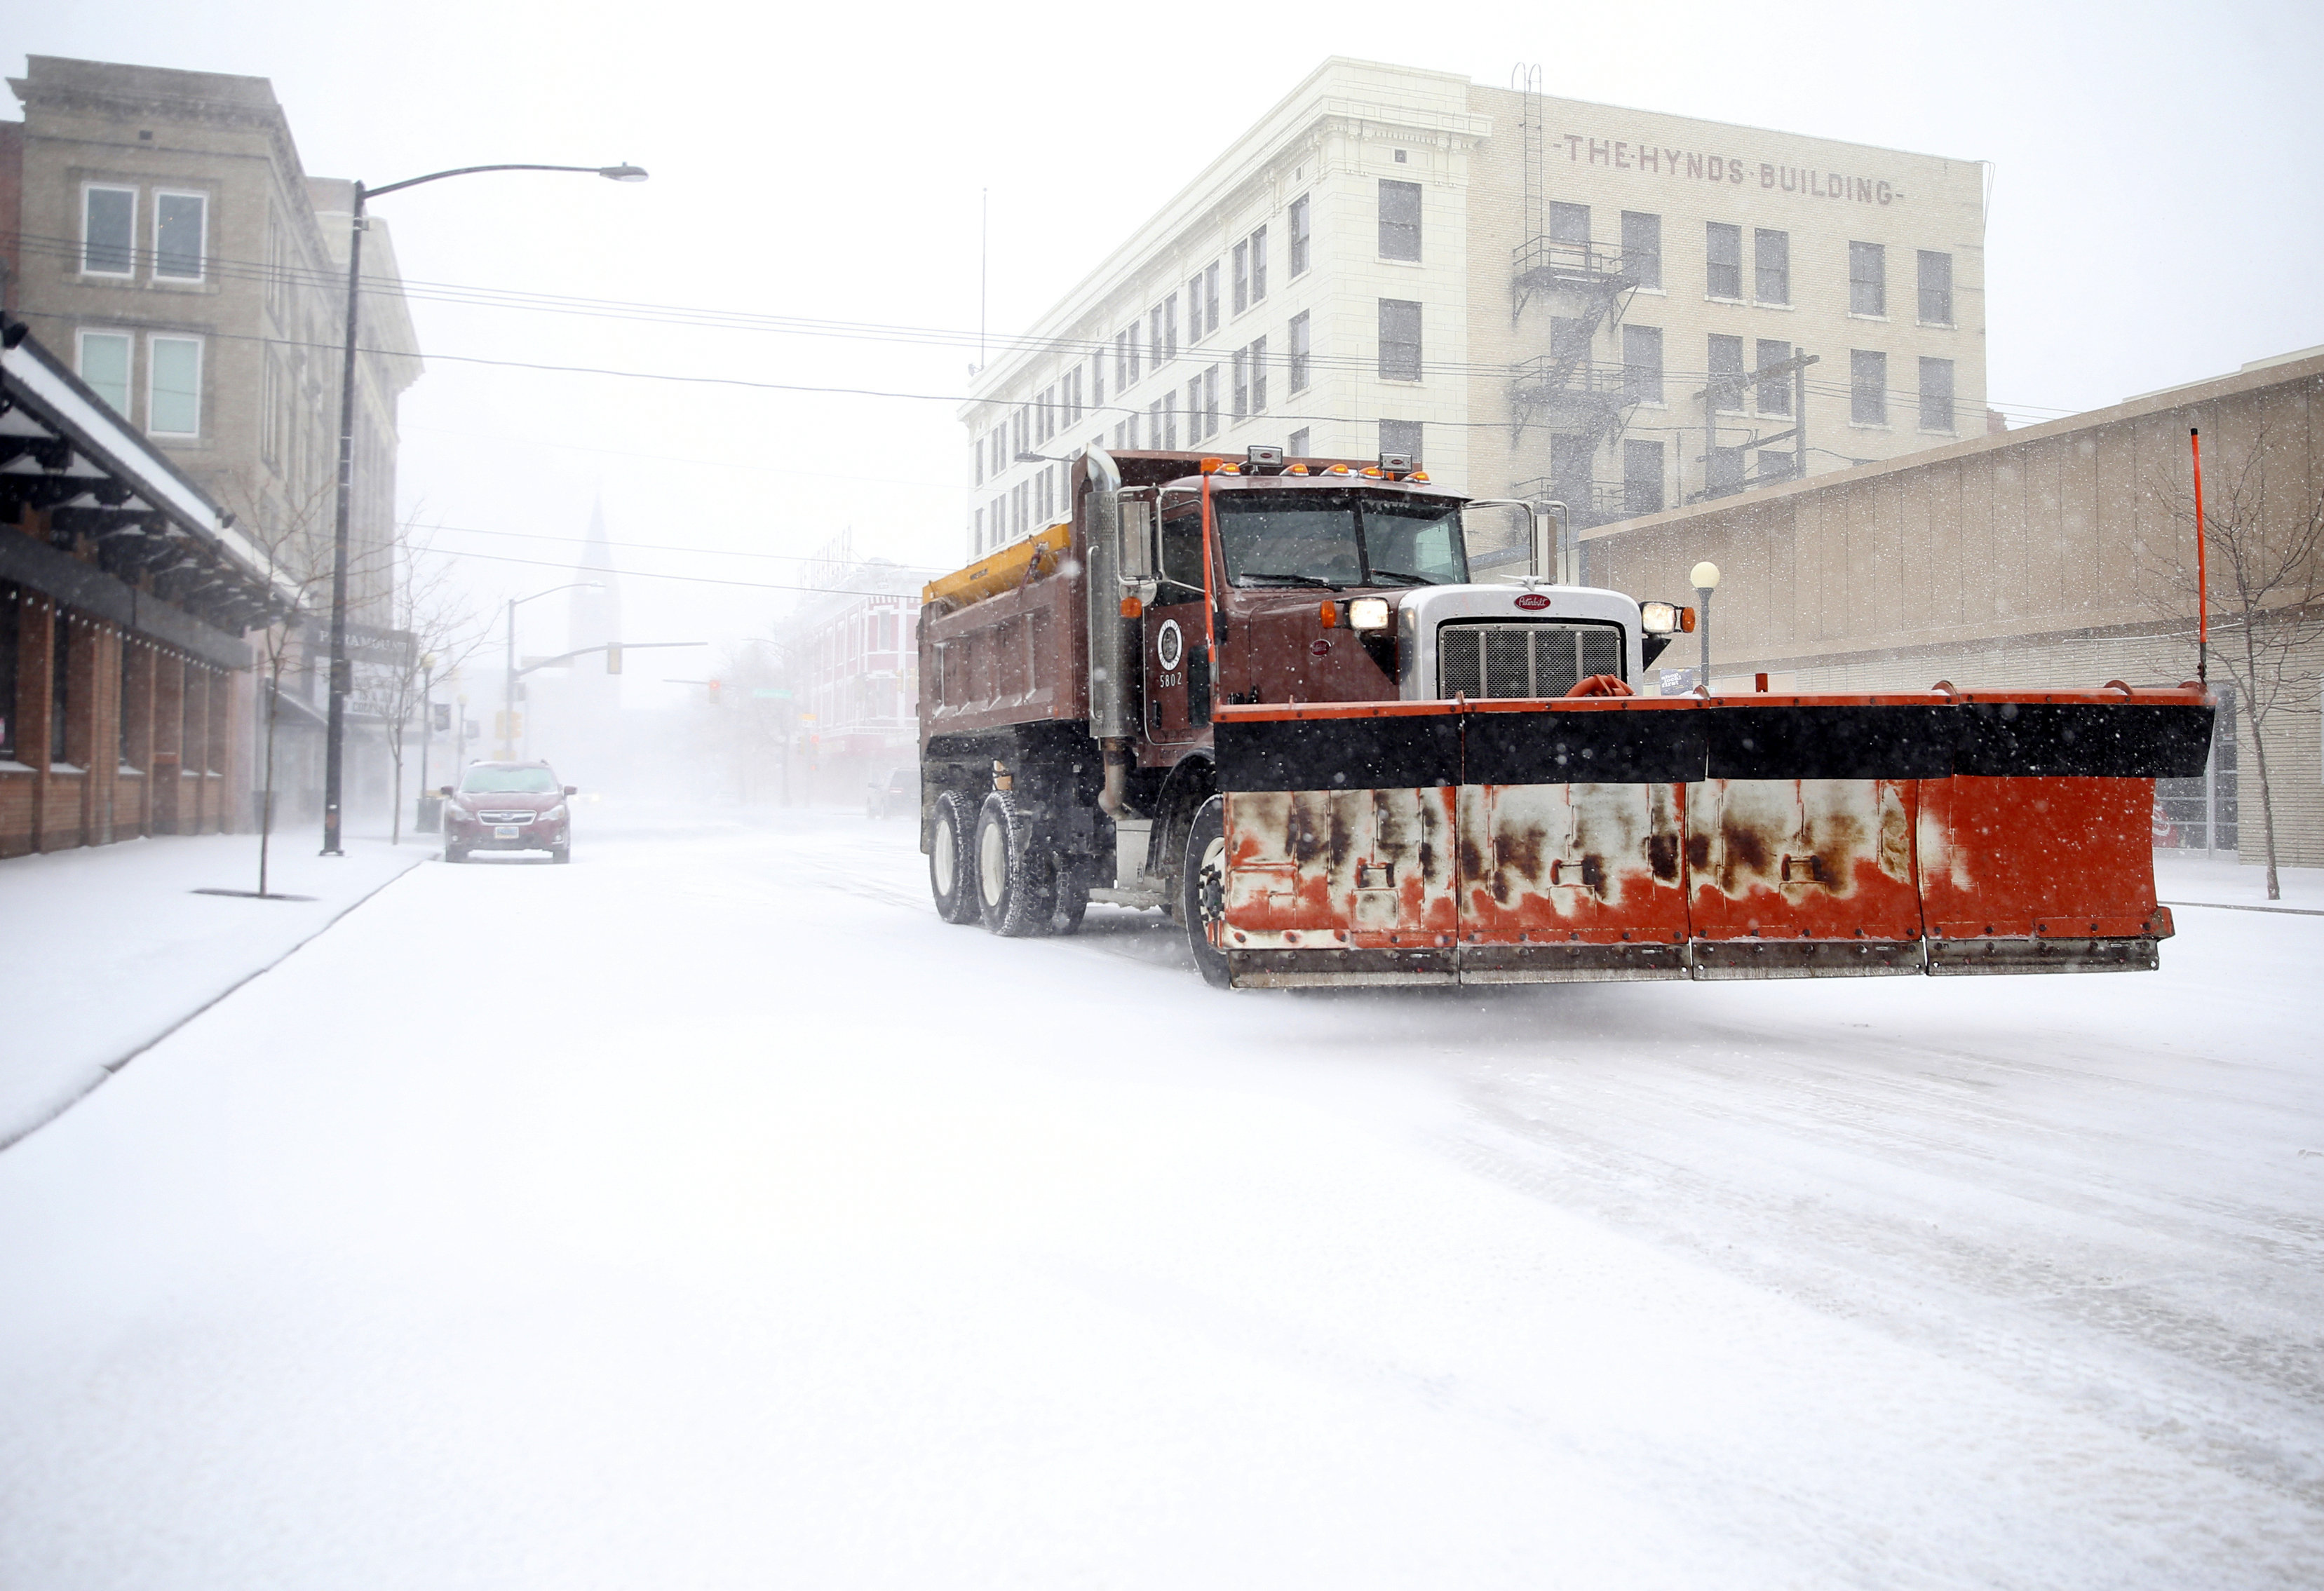 A snow plow rumbles north on Capitol Avenue during a blizzard on Wednesday, March 13, 2019, in Cheyenne, Wyo. (Jacob Byk/The